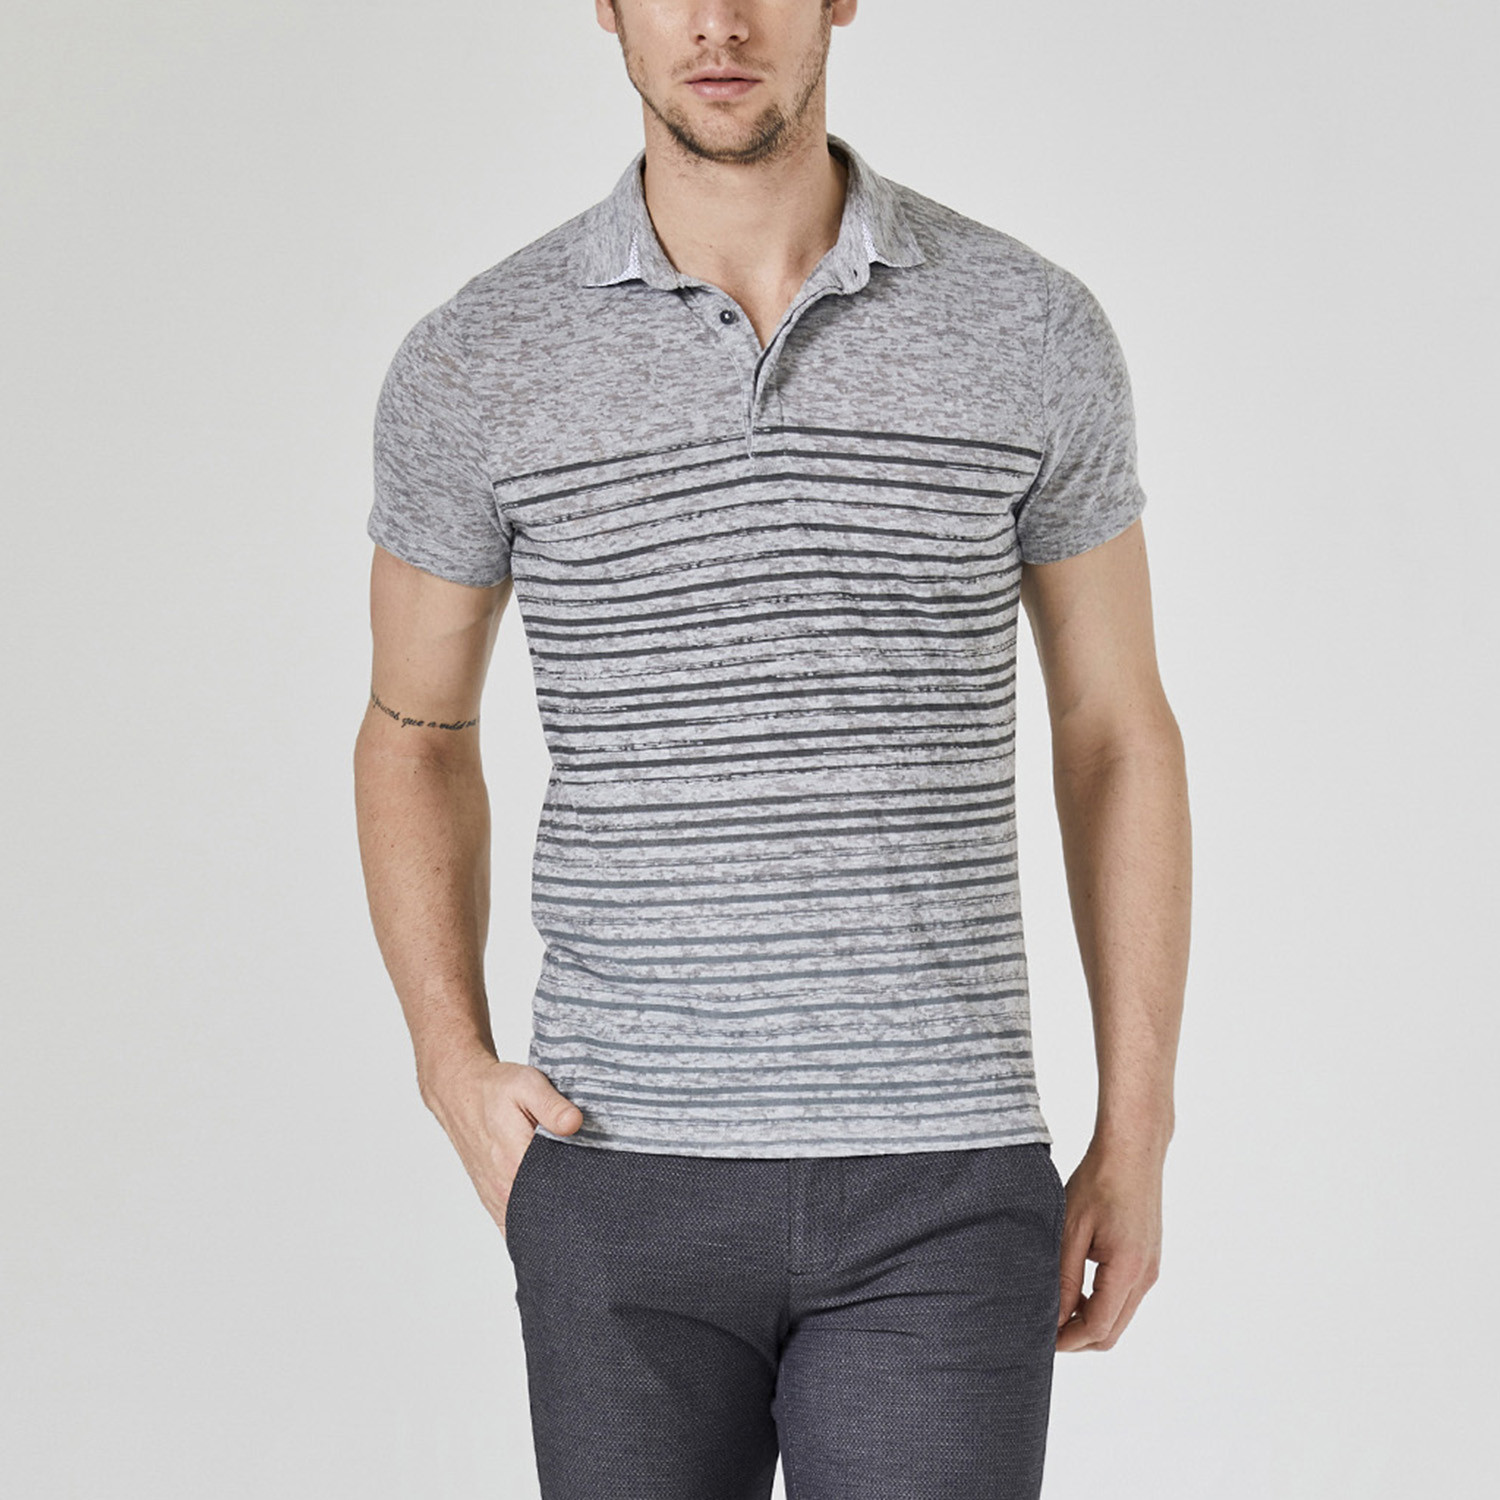 Printed Polo T Shirt Grey Melange Xs Xint Touch Of Modern